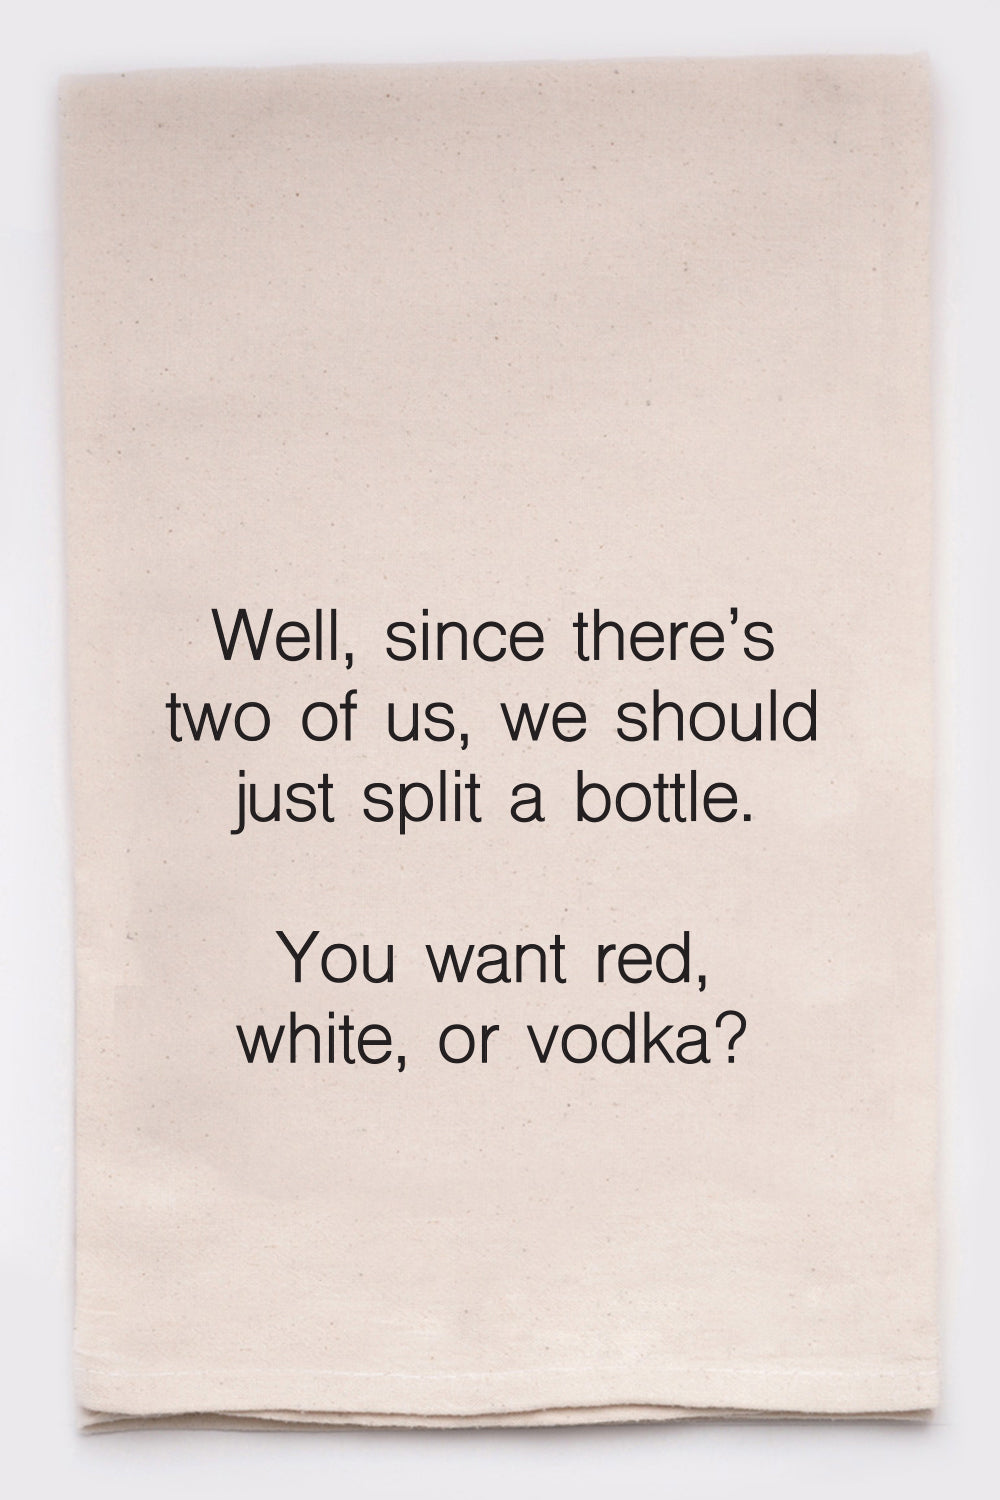 Well, since there's two of us, we should just split a bottle. You want red, white, or vodka?